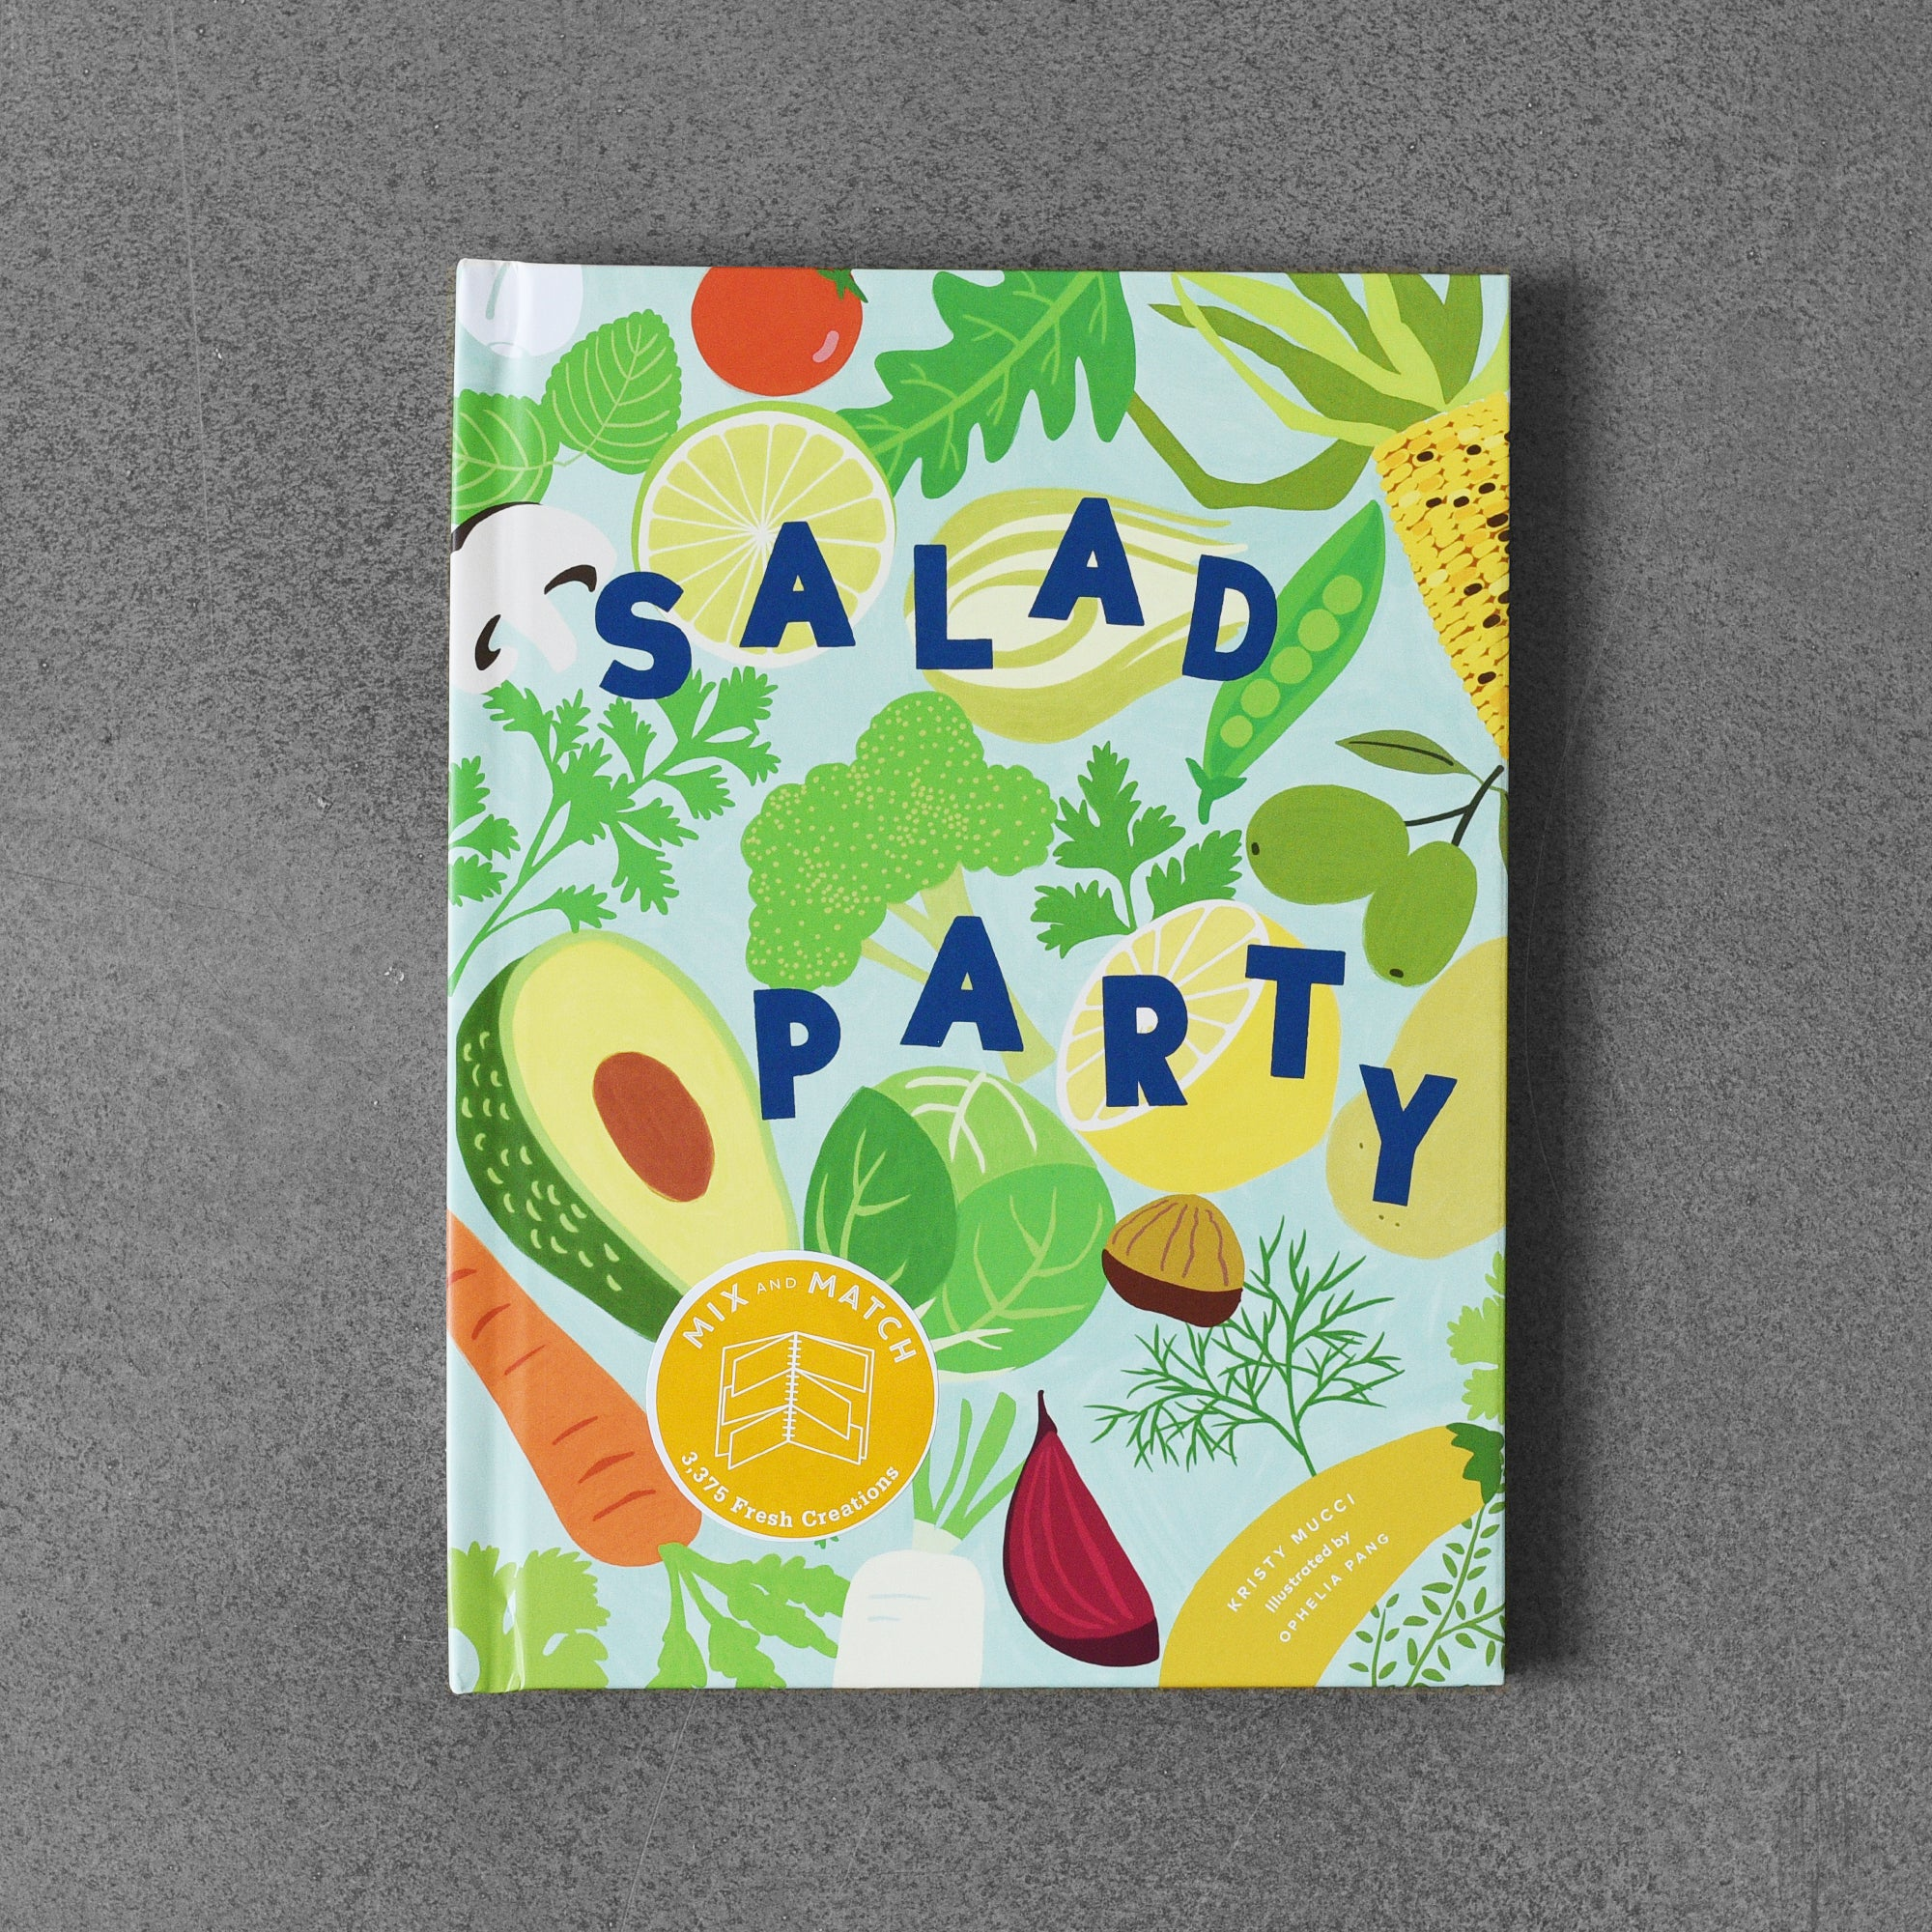 Salad Party: Mix and Match to Make 3375 Fresh Creations